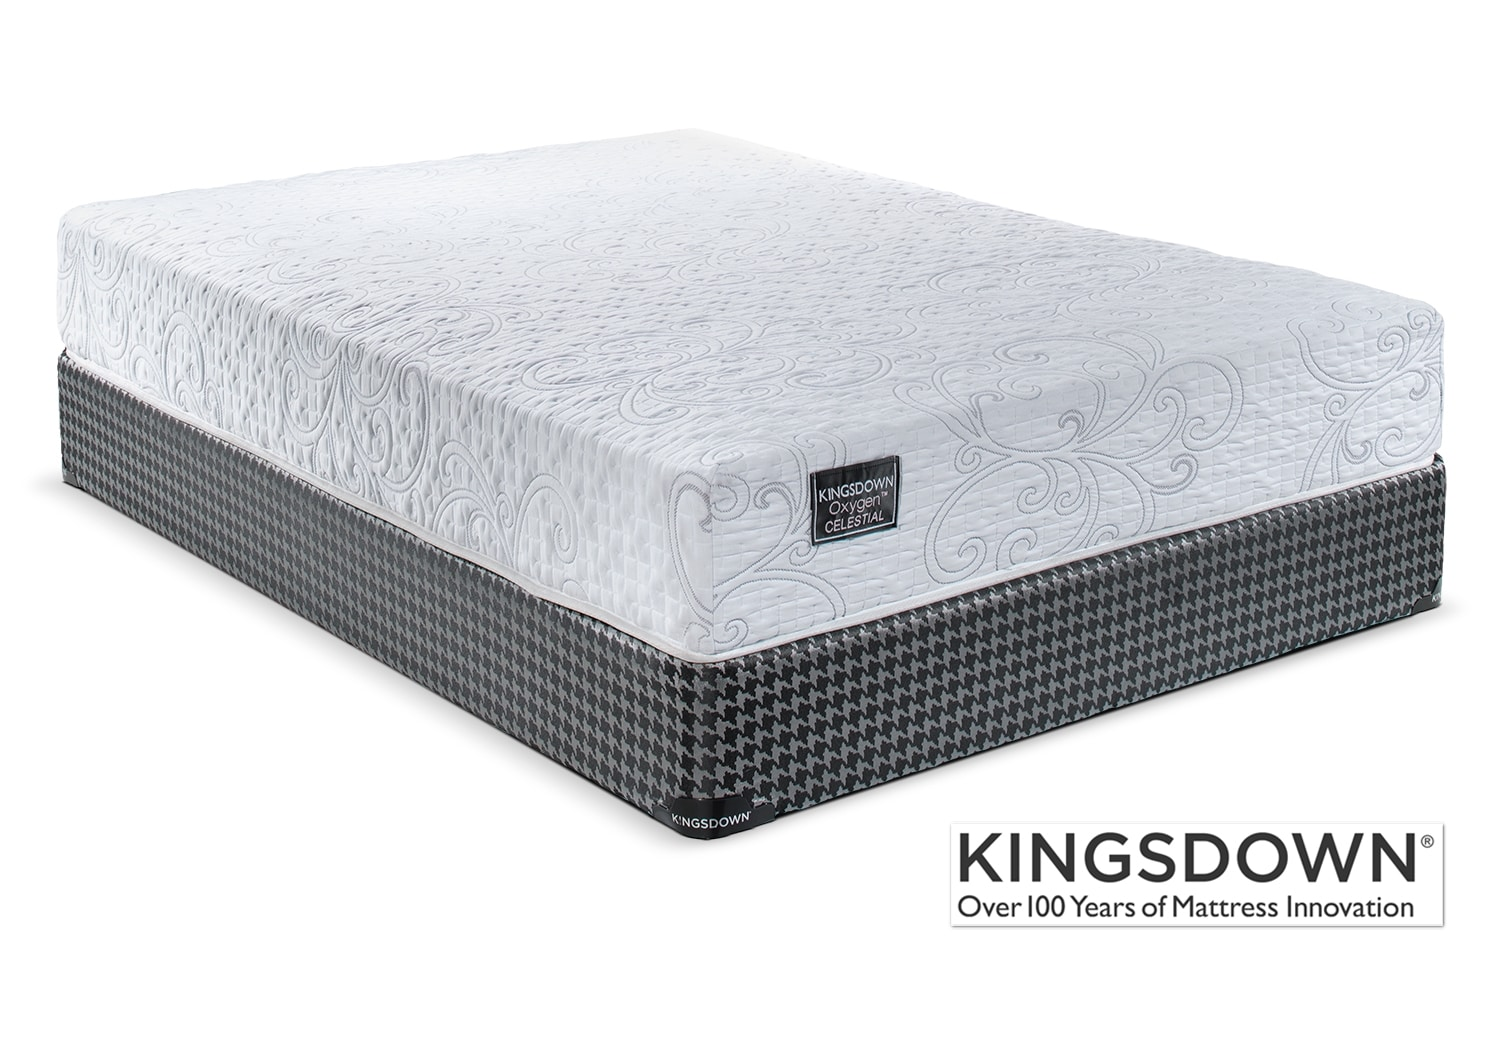 Kingsdown Celestial Full Mattress/Boxspring Set